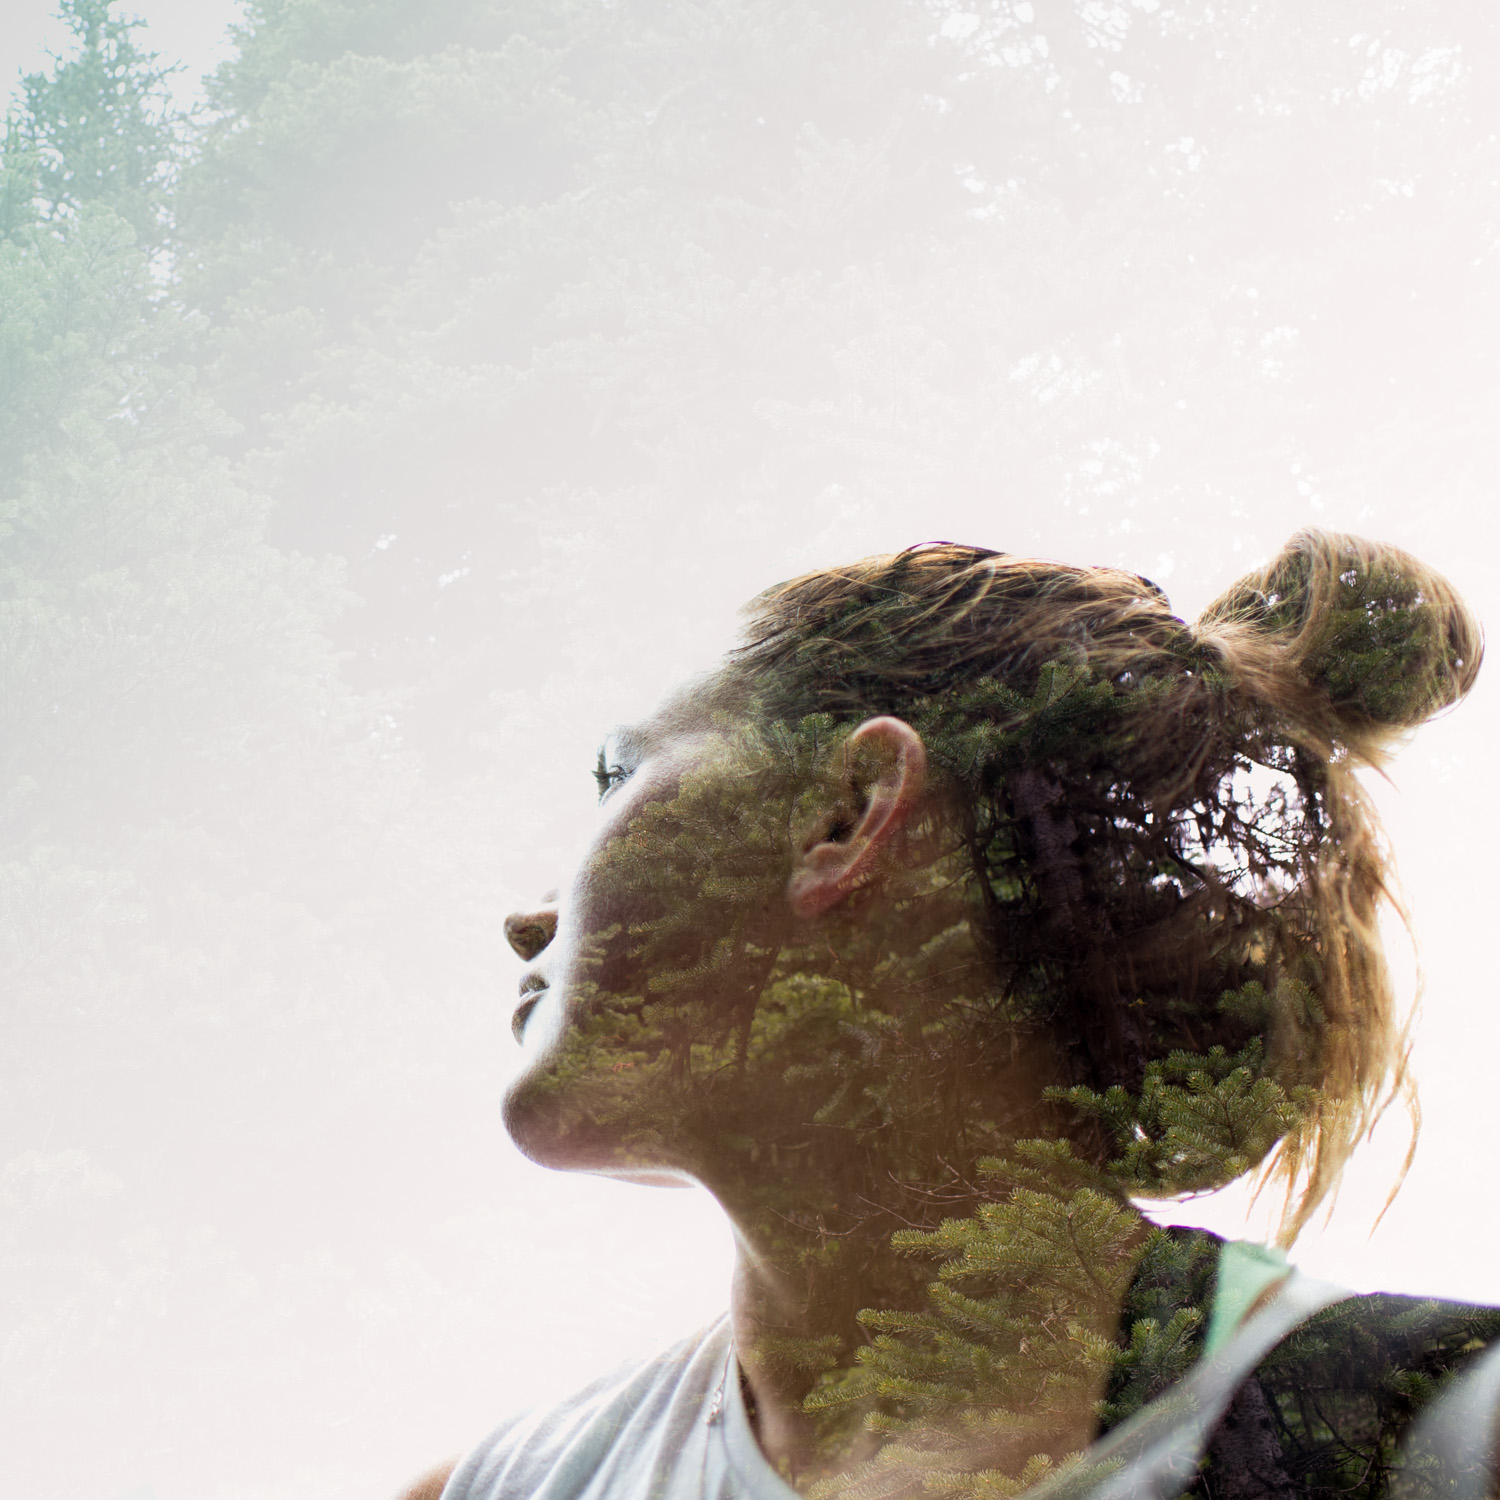 Oneness with nature sympbolised by a multiple exposure portrait